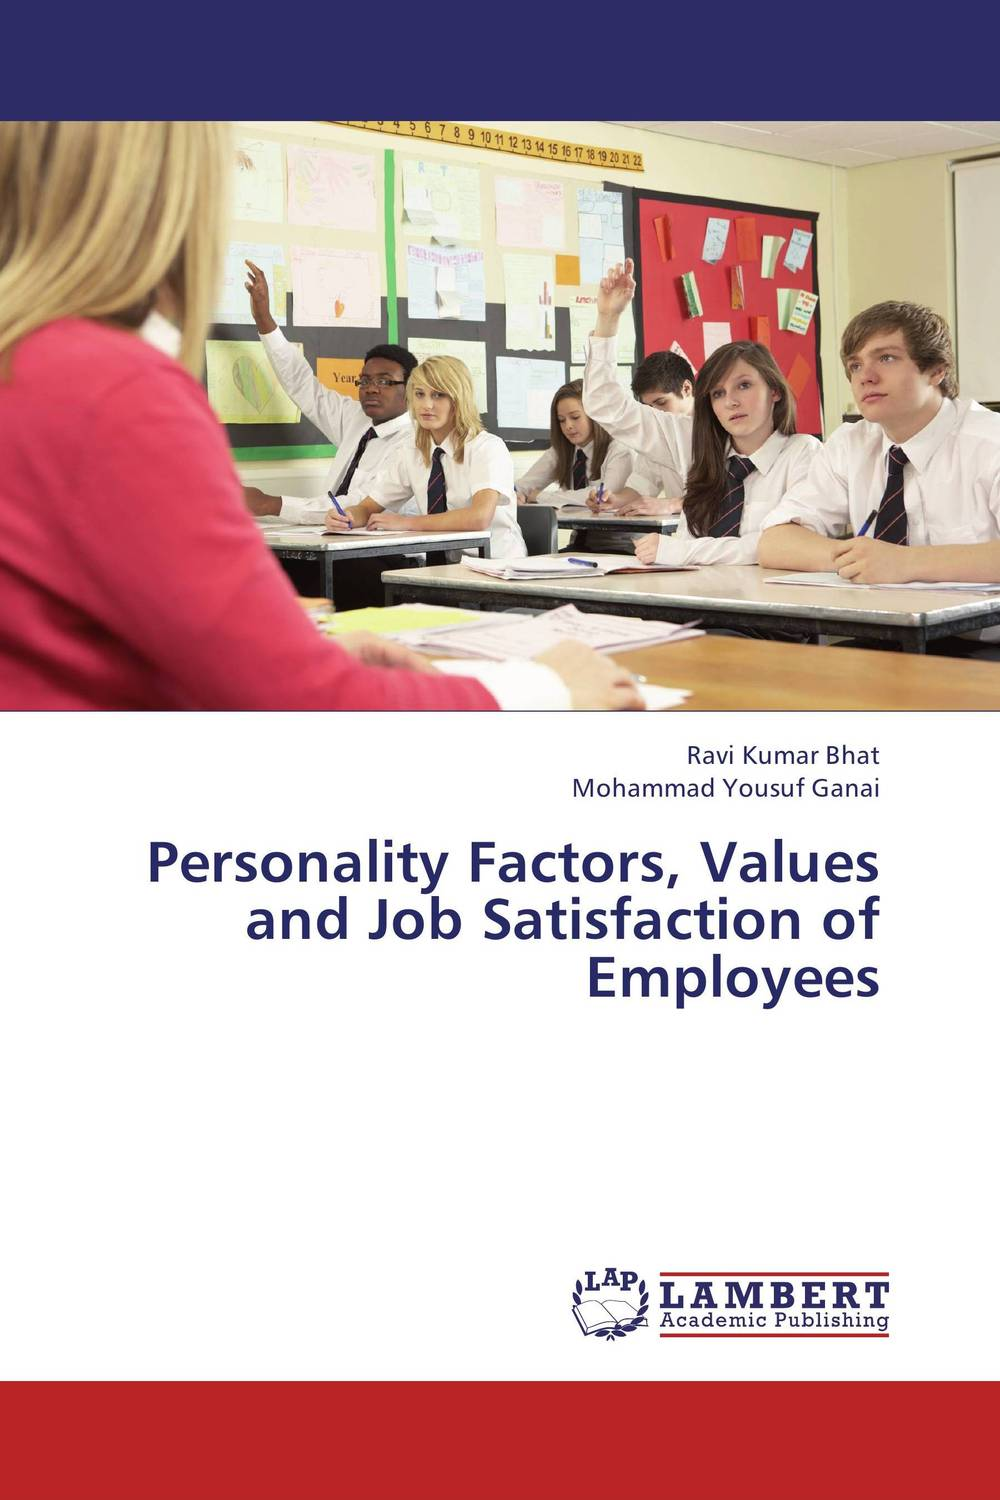 Personality Factors, Values and Job Satisfaction of Employees burnout ways of coping and job satisfaction among doctors